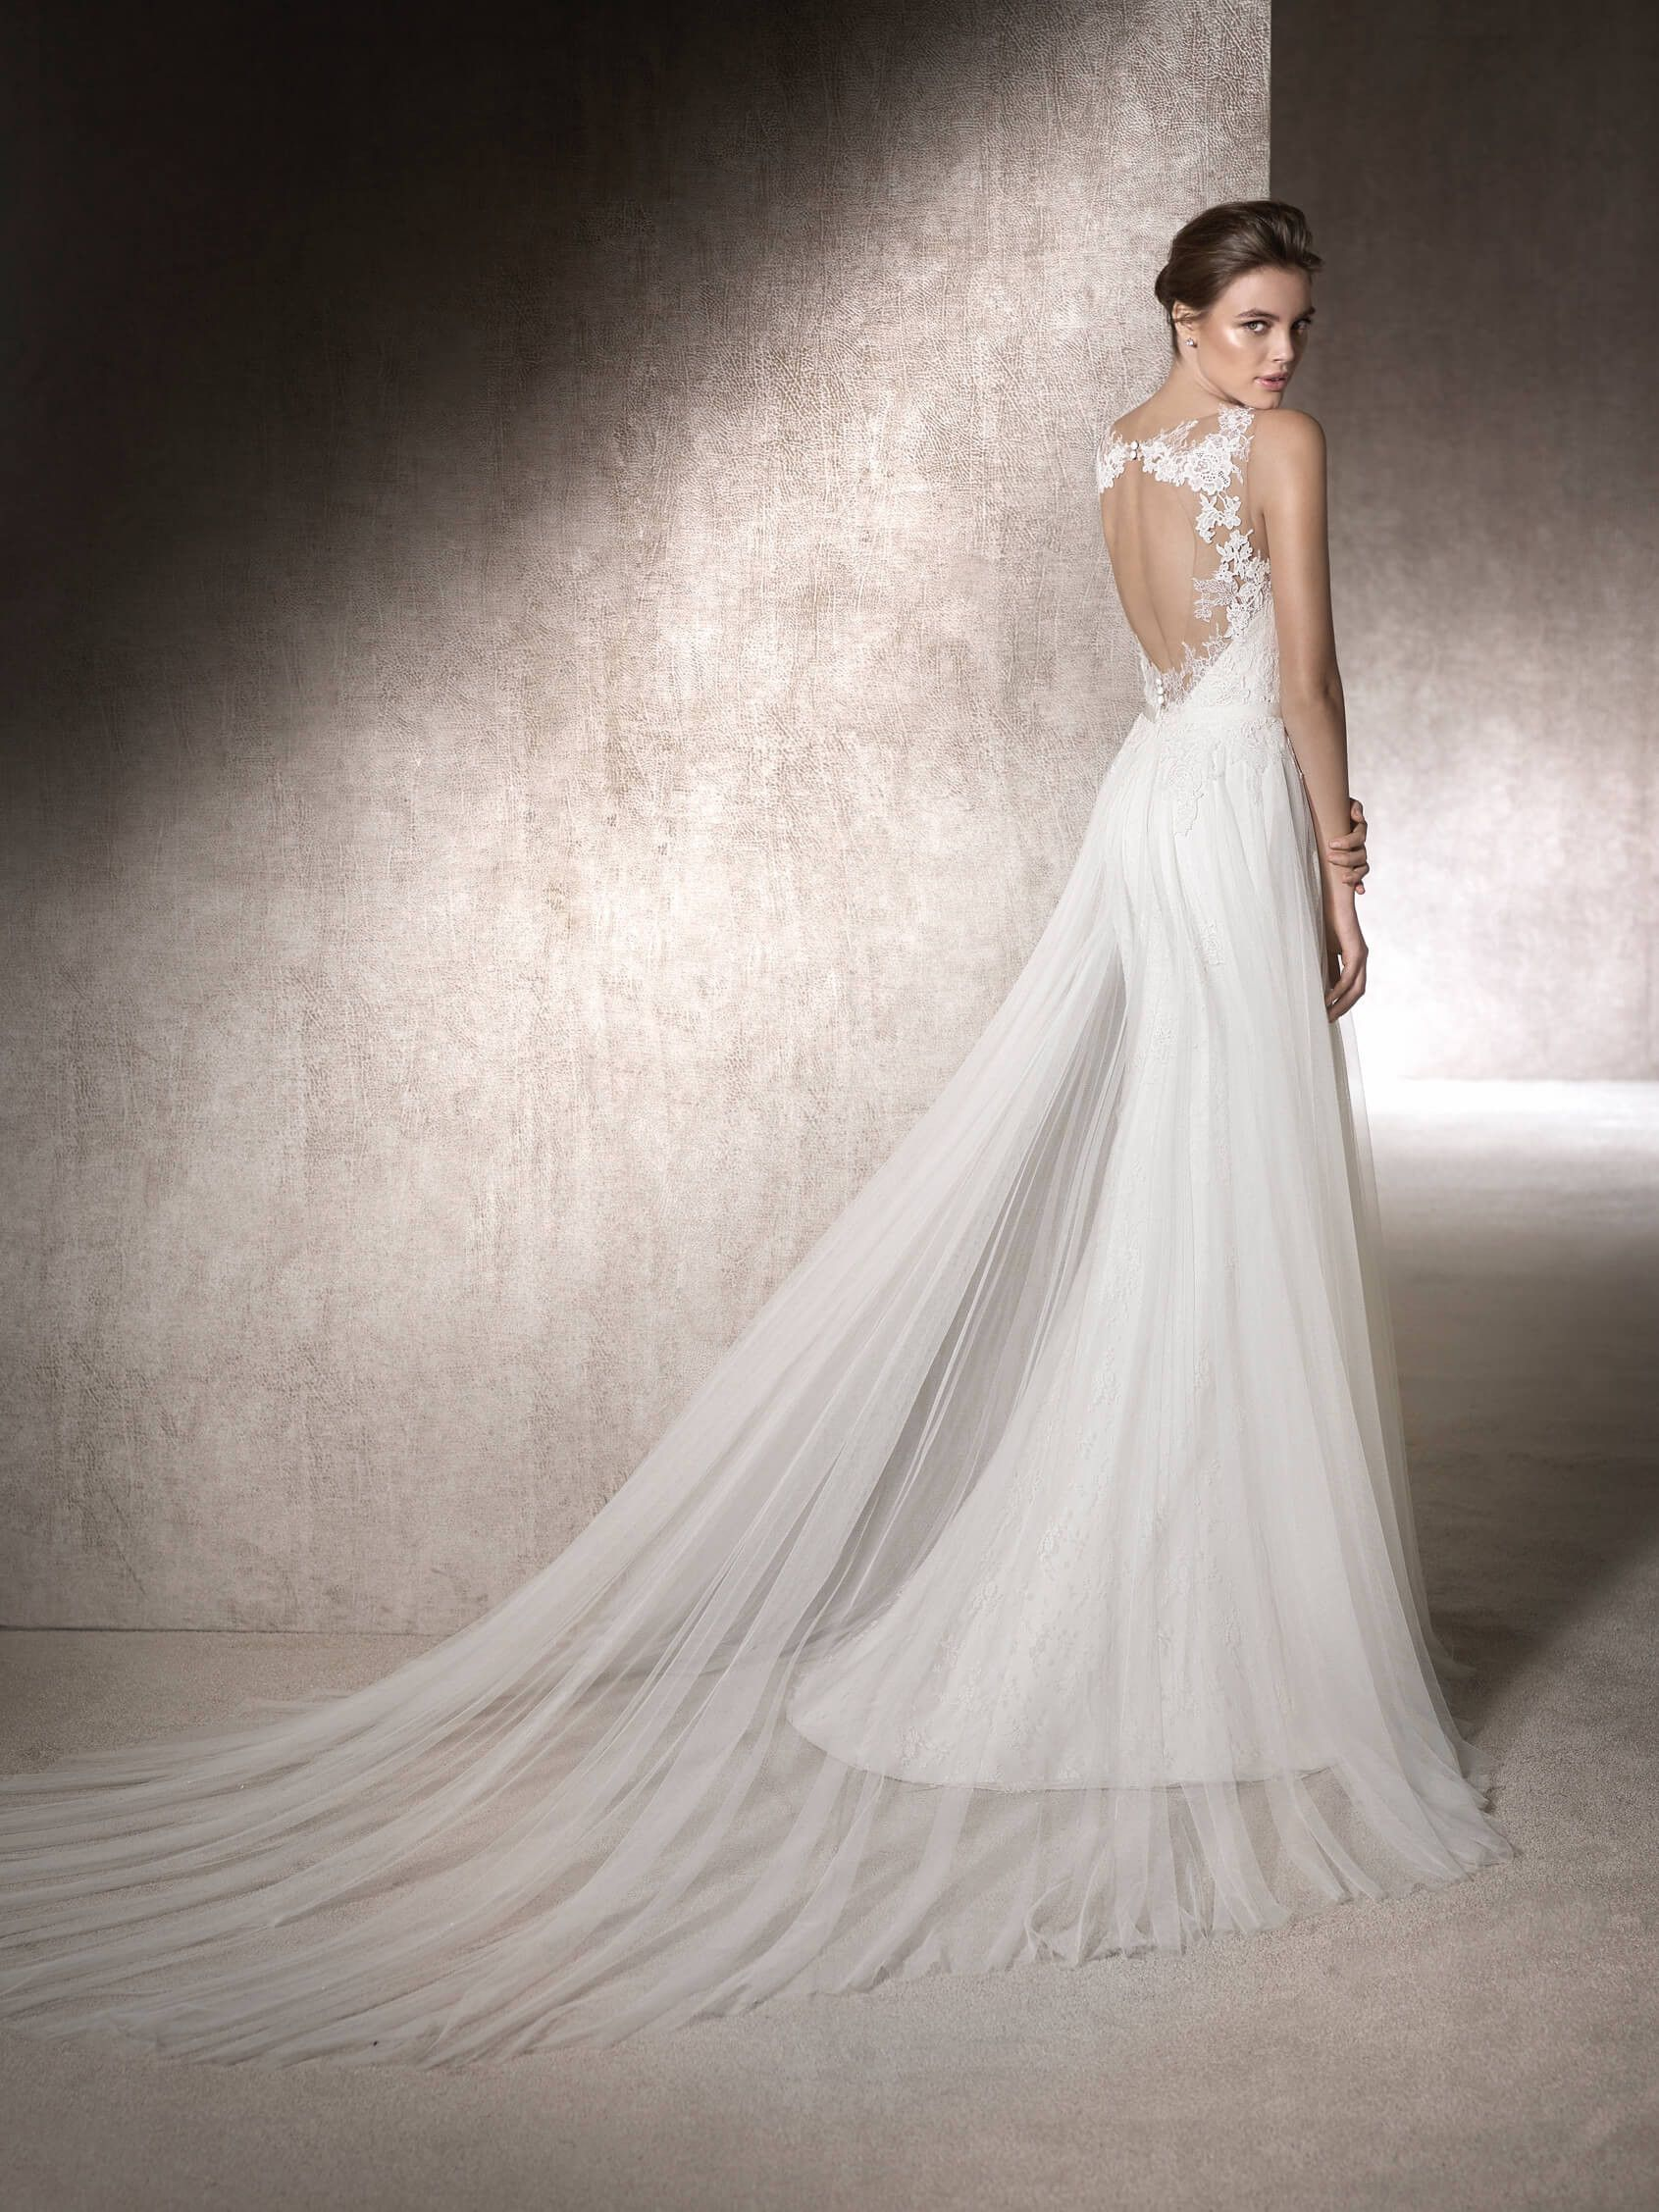 Monica is a flared wedding dress in soft tulle chantilly and